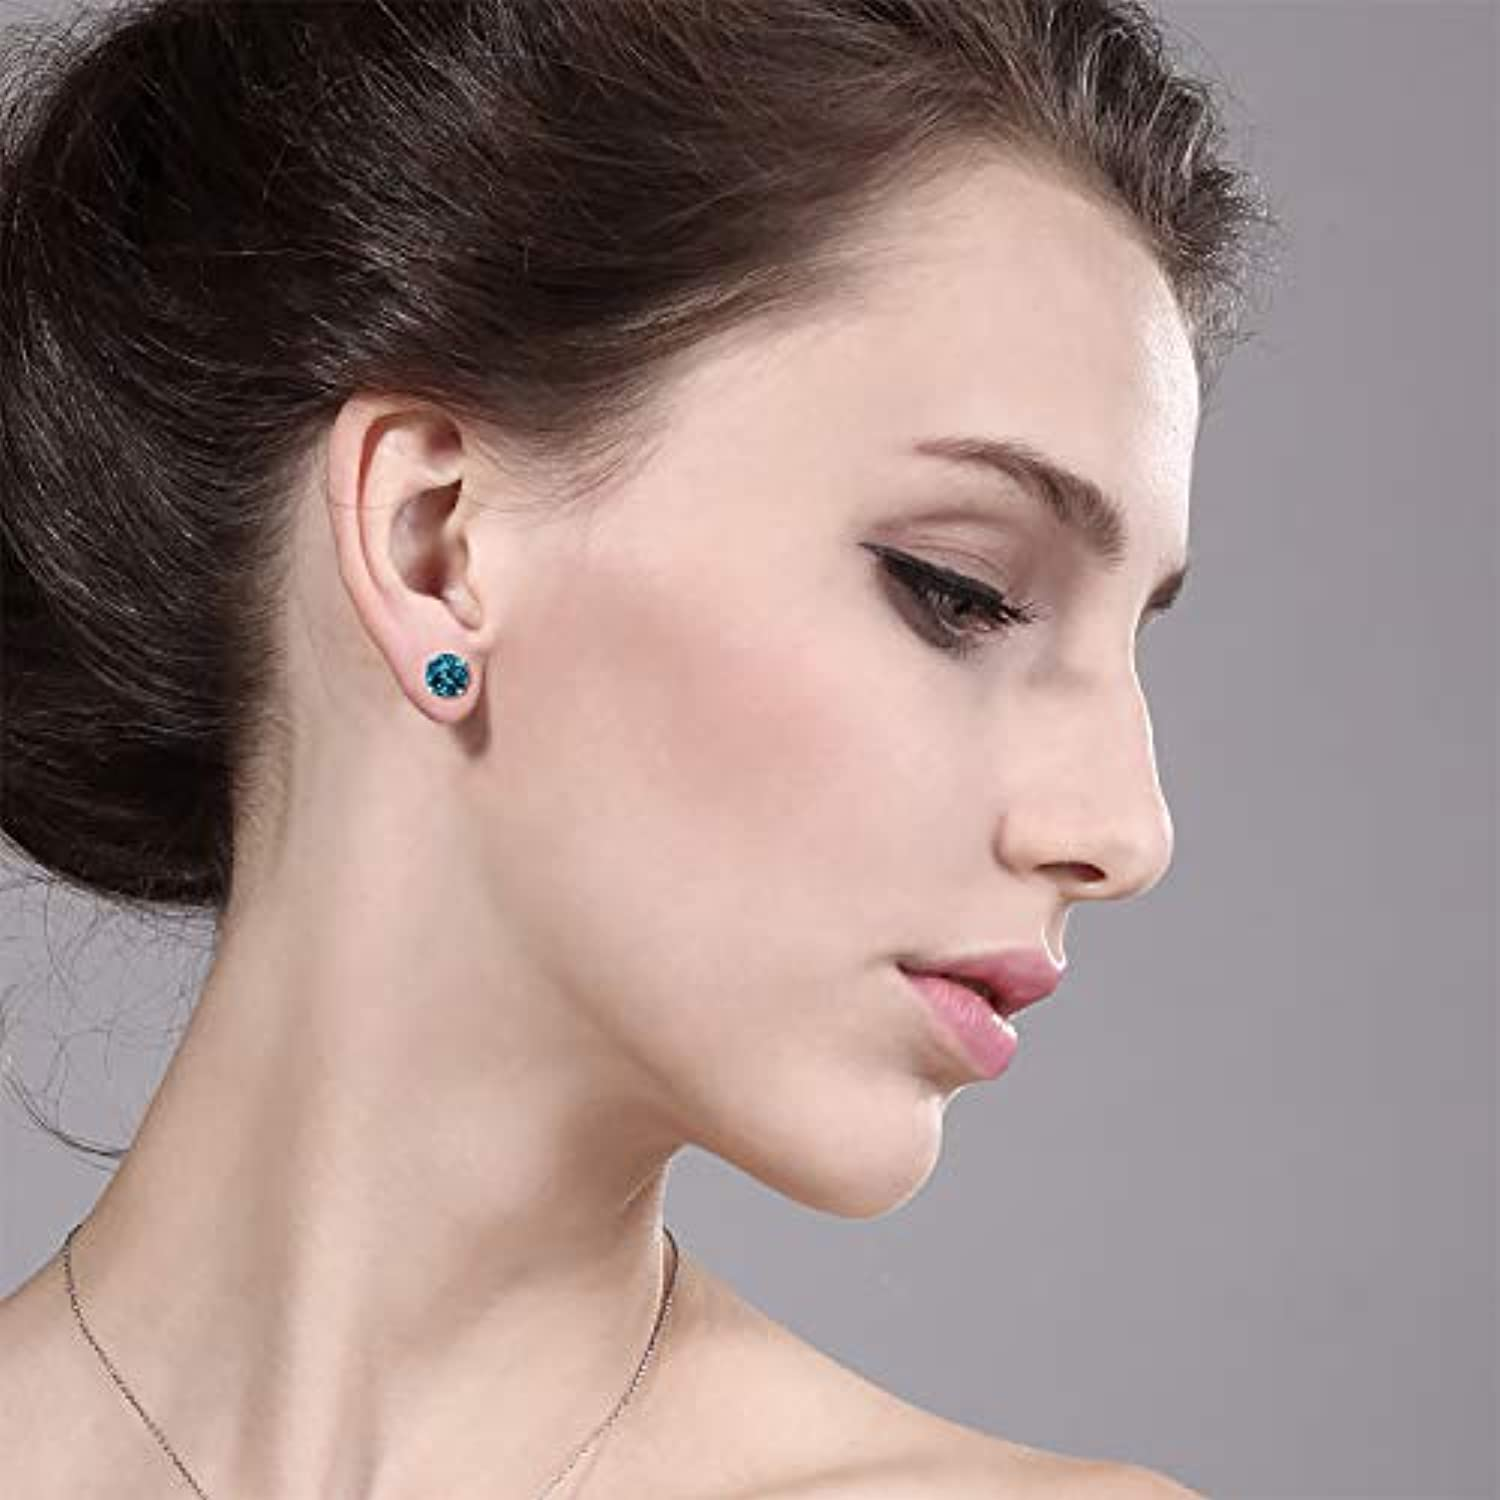 14K Gold Blue Topaz Stud Earrings For Women